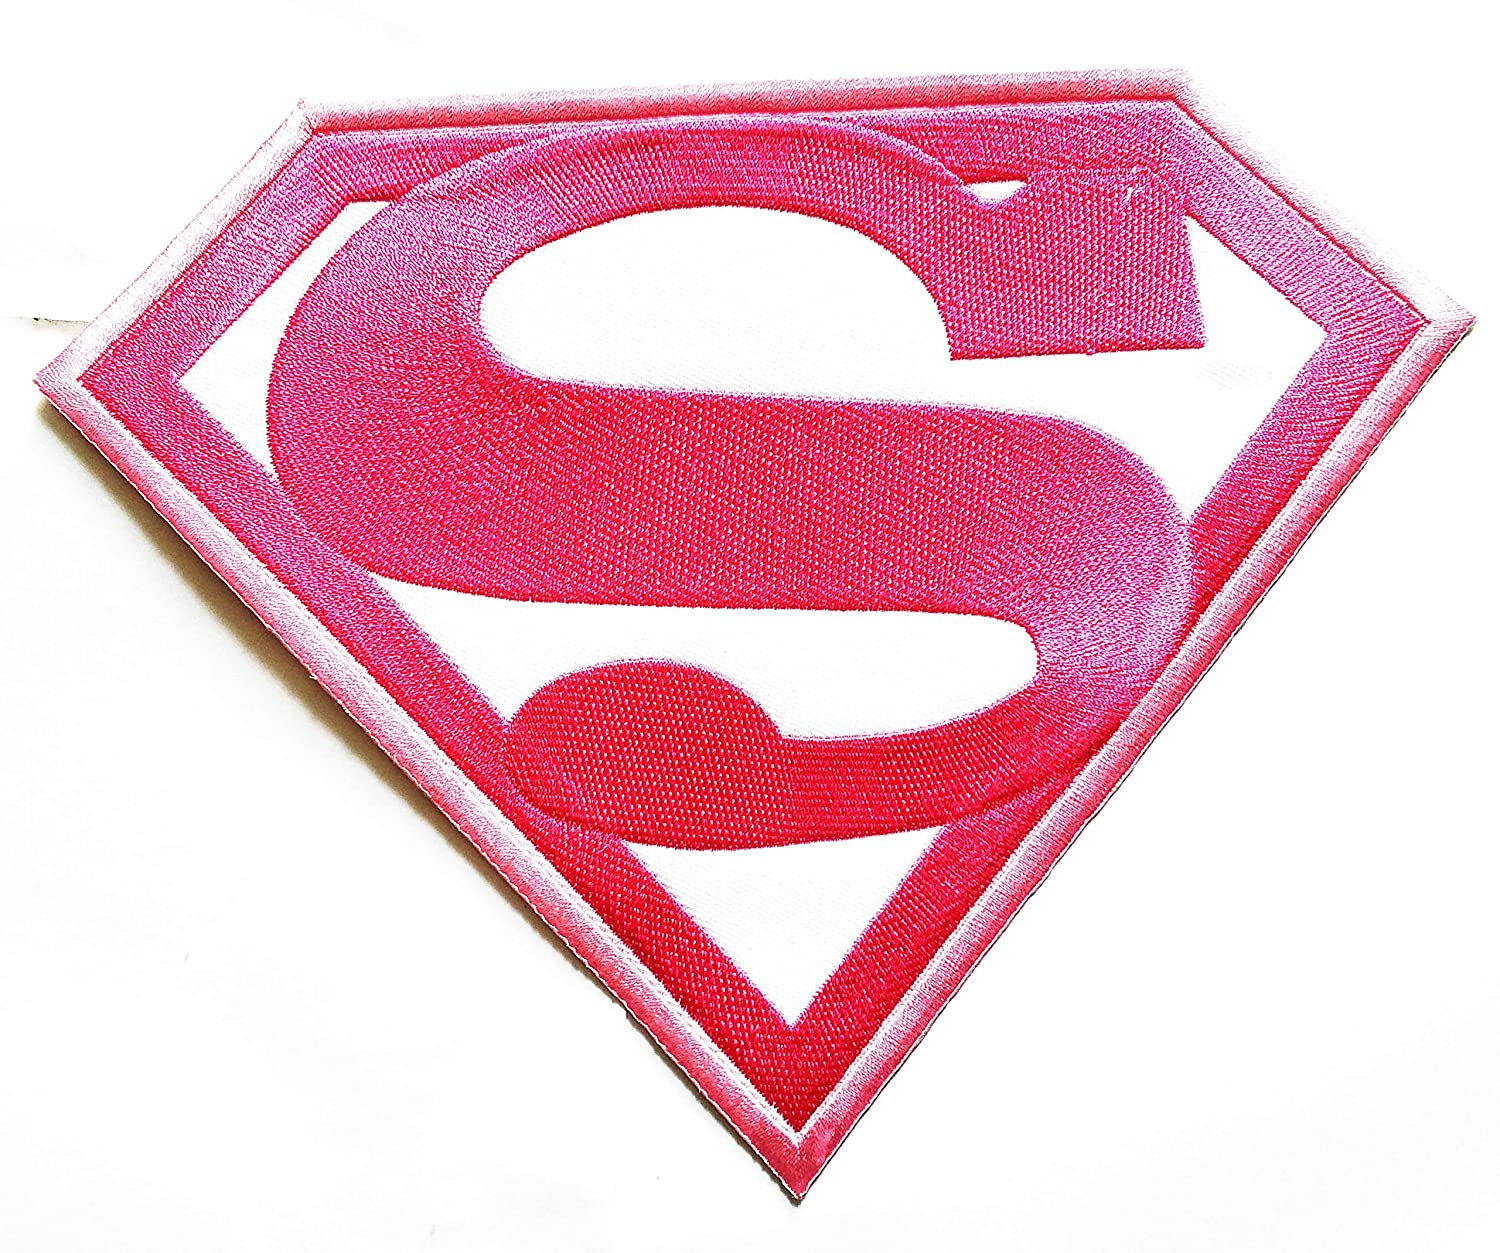 9.2 ''X 7'' Big Jumbo Pink White Superman Hero Superhero Movie Cartoon Logo Jacket t-Shirt Jeans Polo Patch Iron on Embroidered Logo Motorcycle Rider Biker Patch by Tour les jours Shop